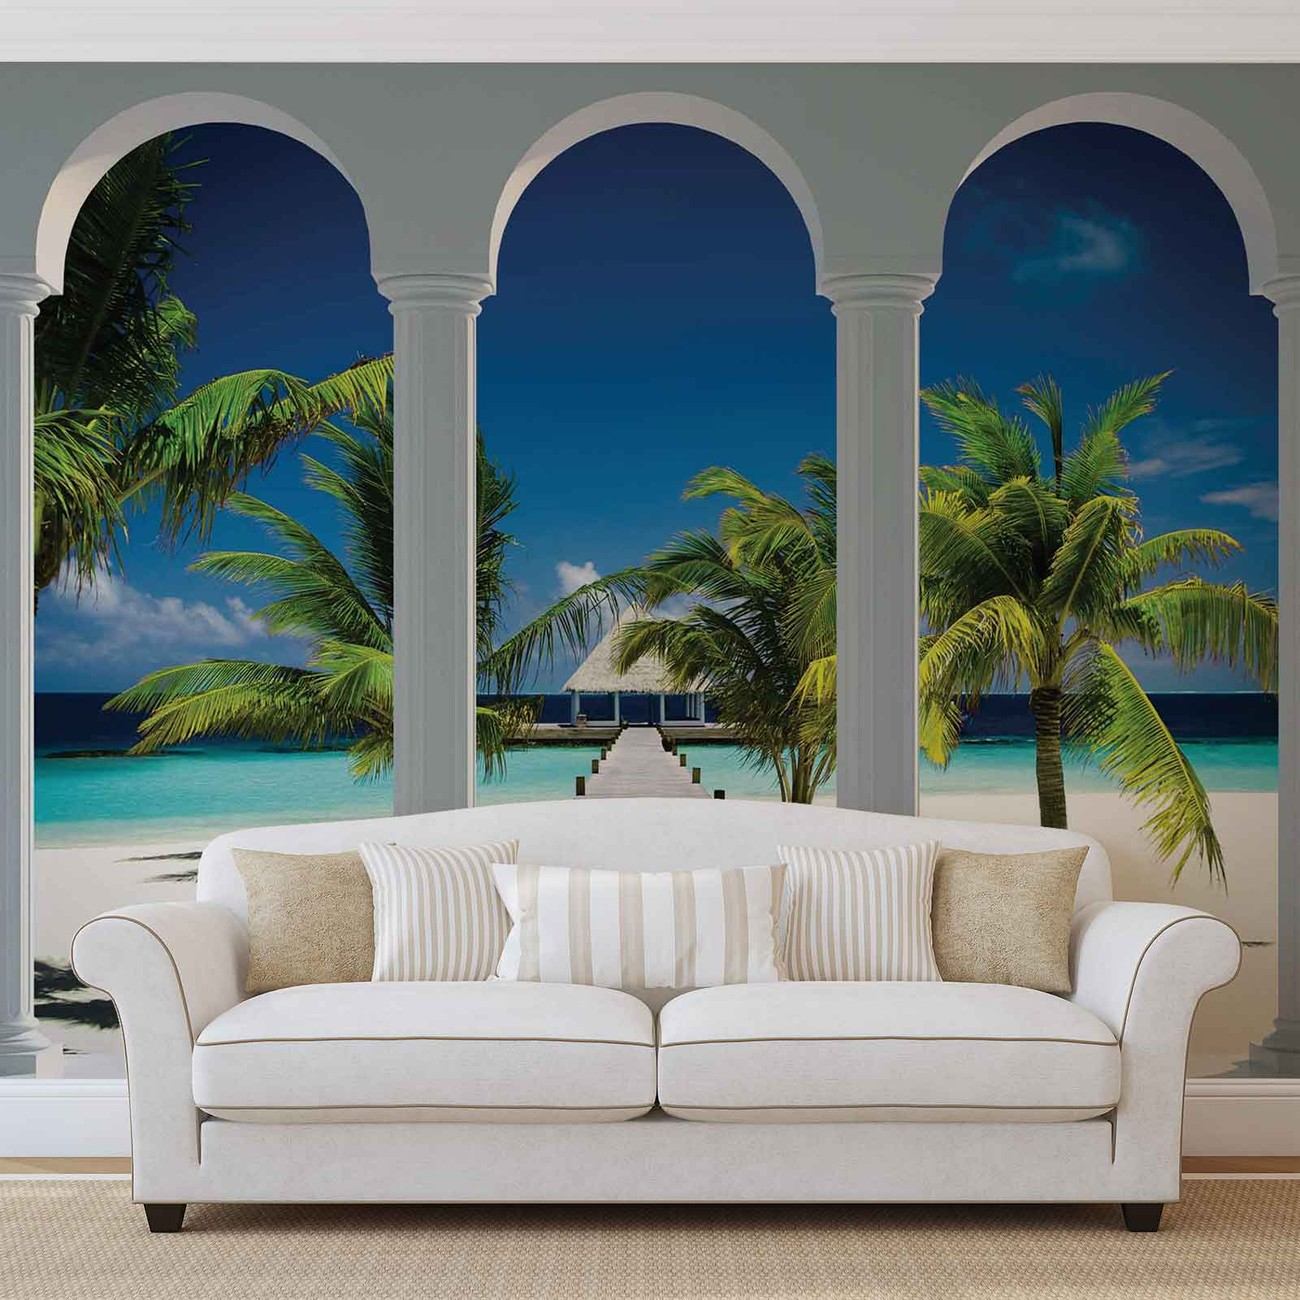 Beach tropical paradise arches wall paper mural buy at for Poster murali giganti